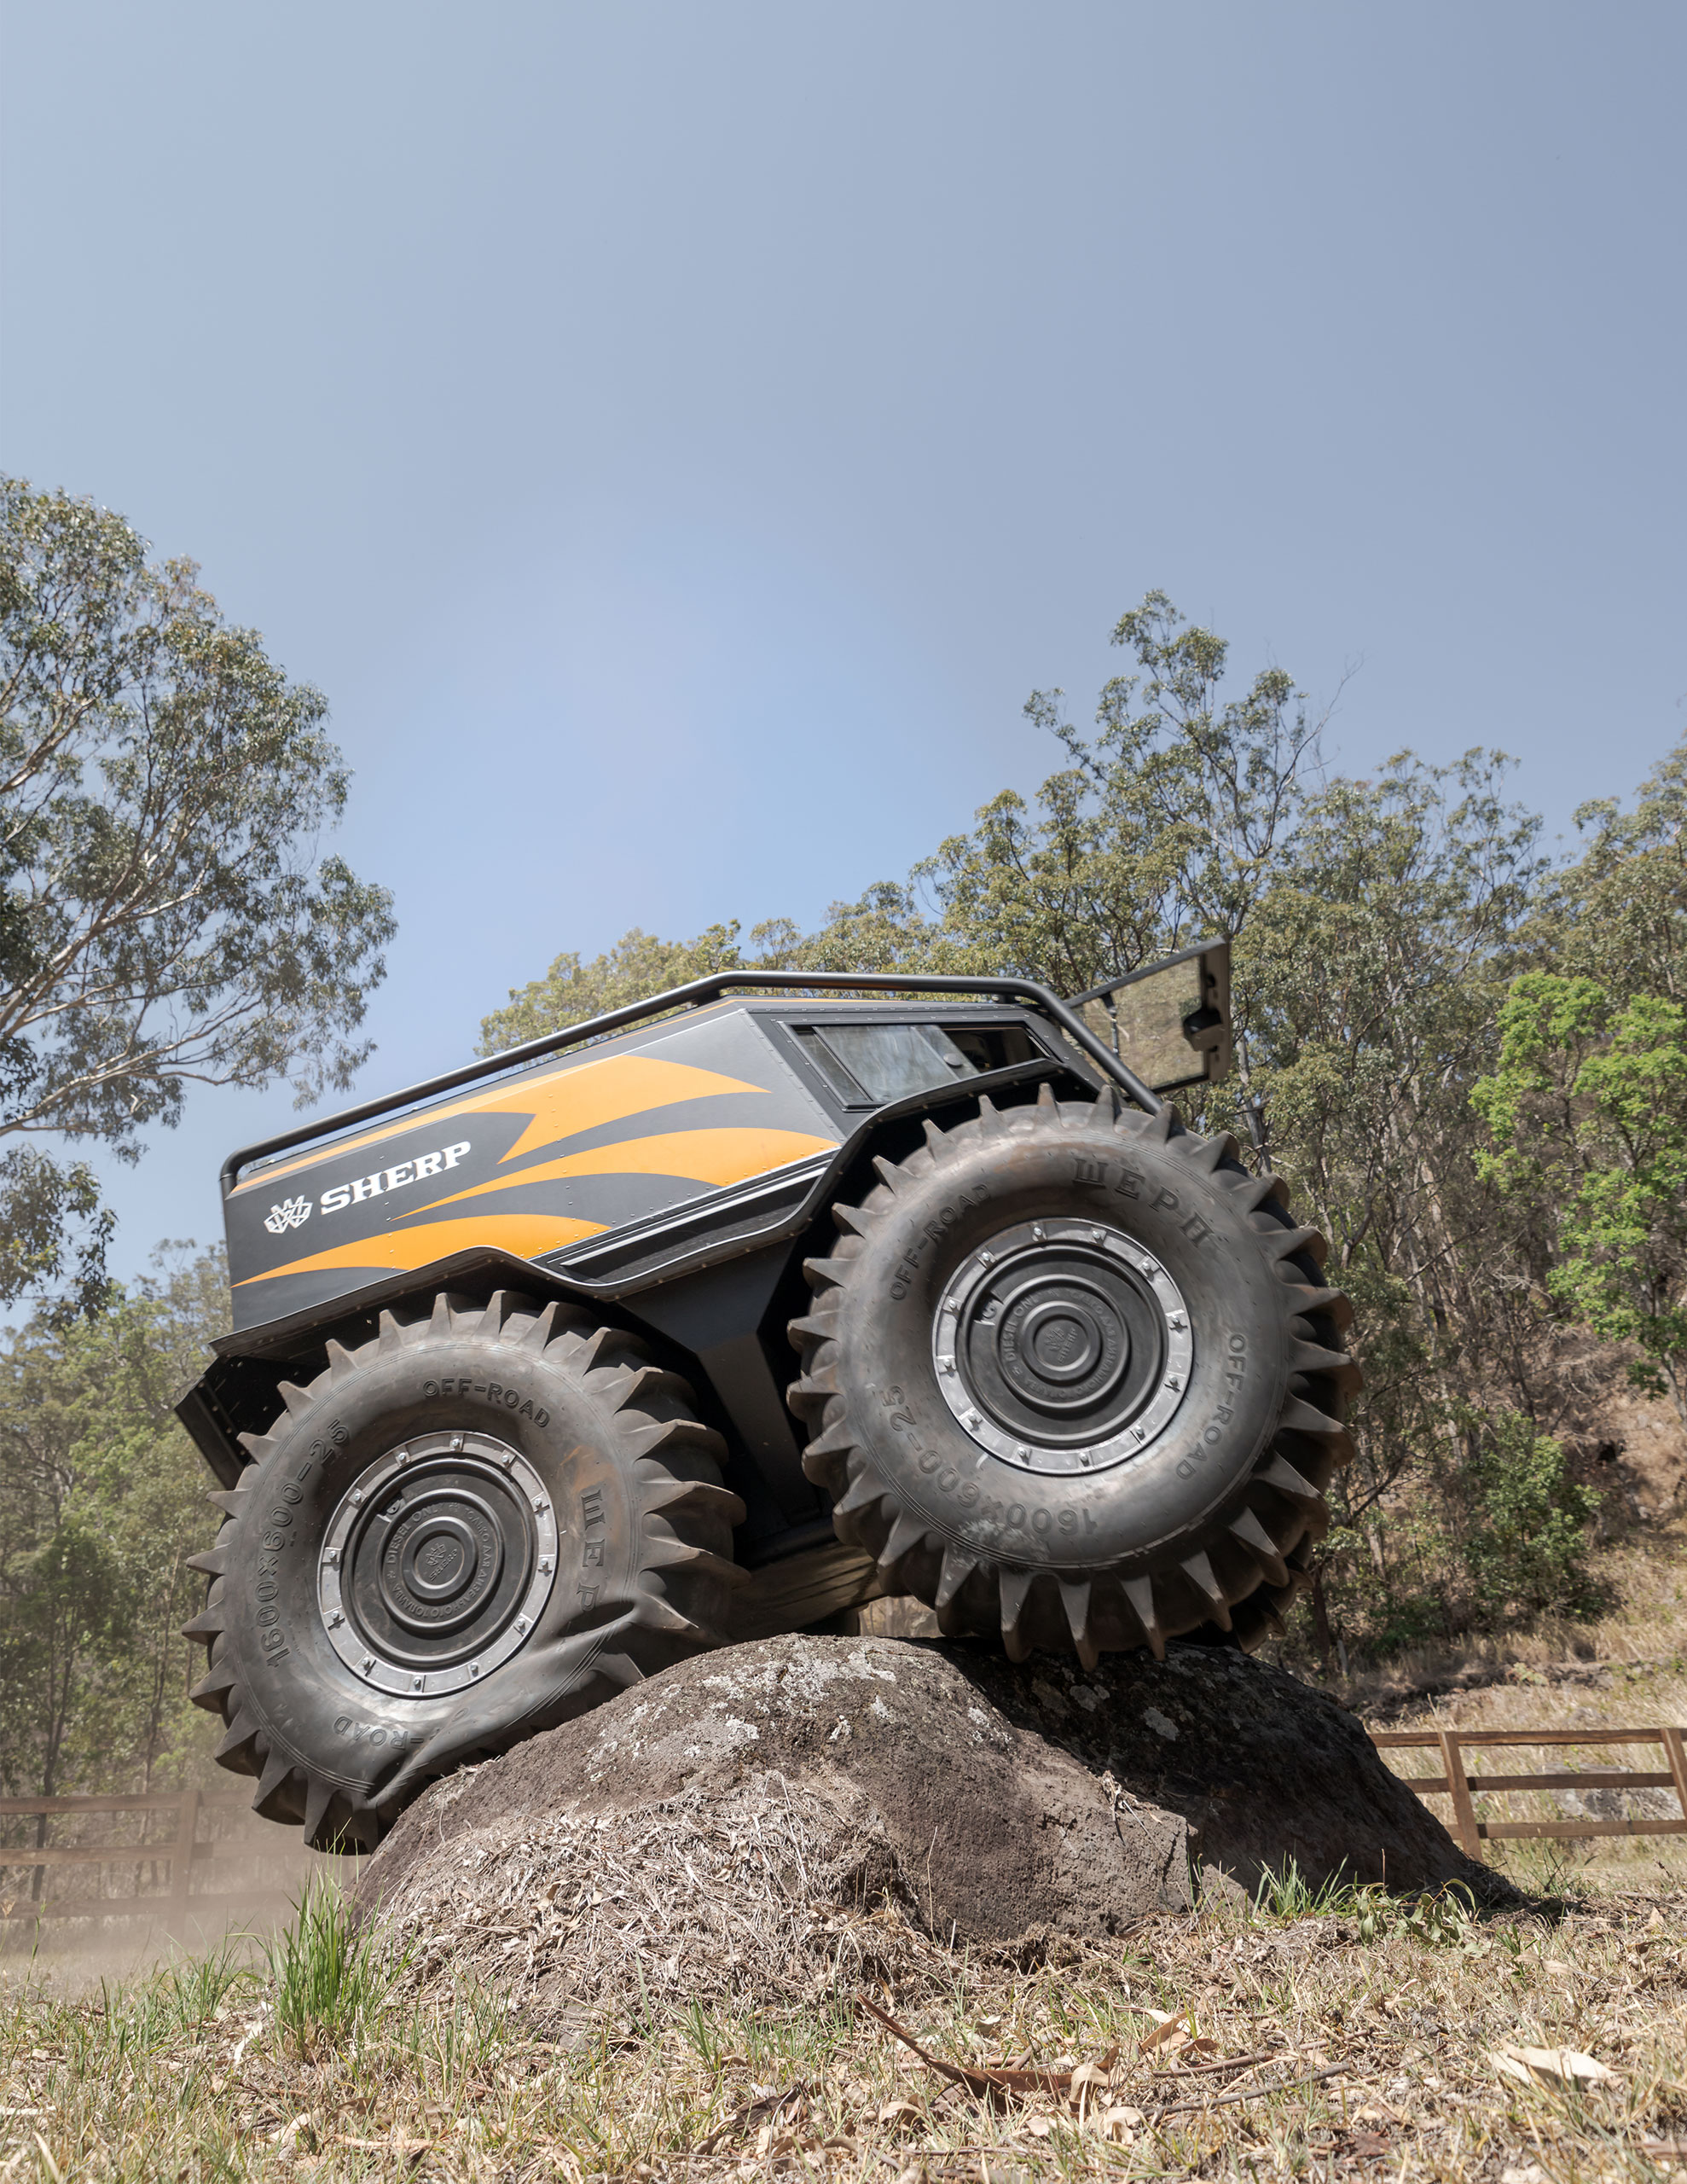 SHERP Australia off-road ability